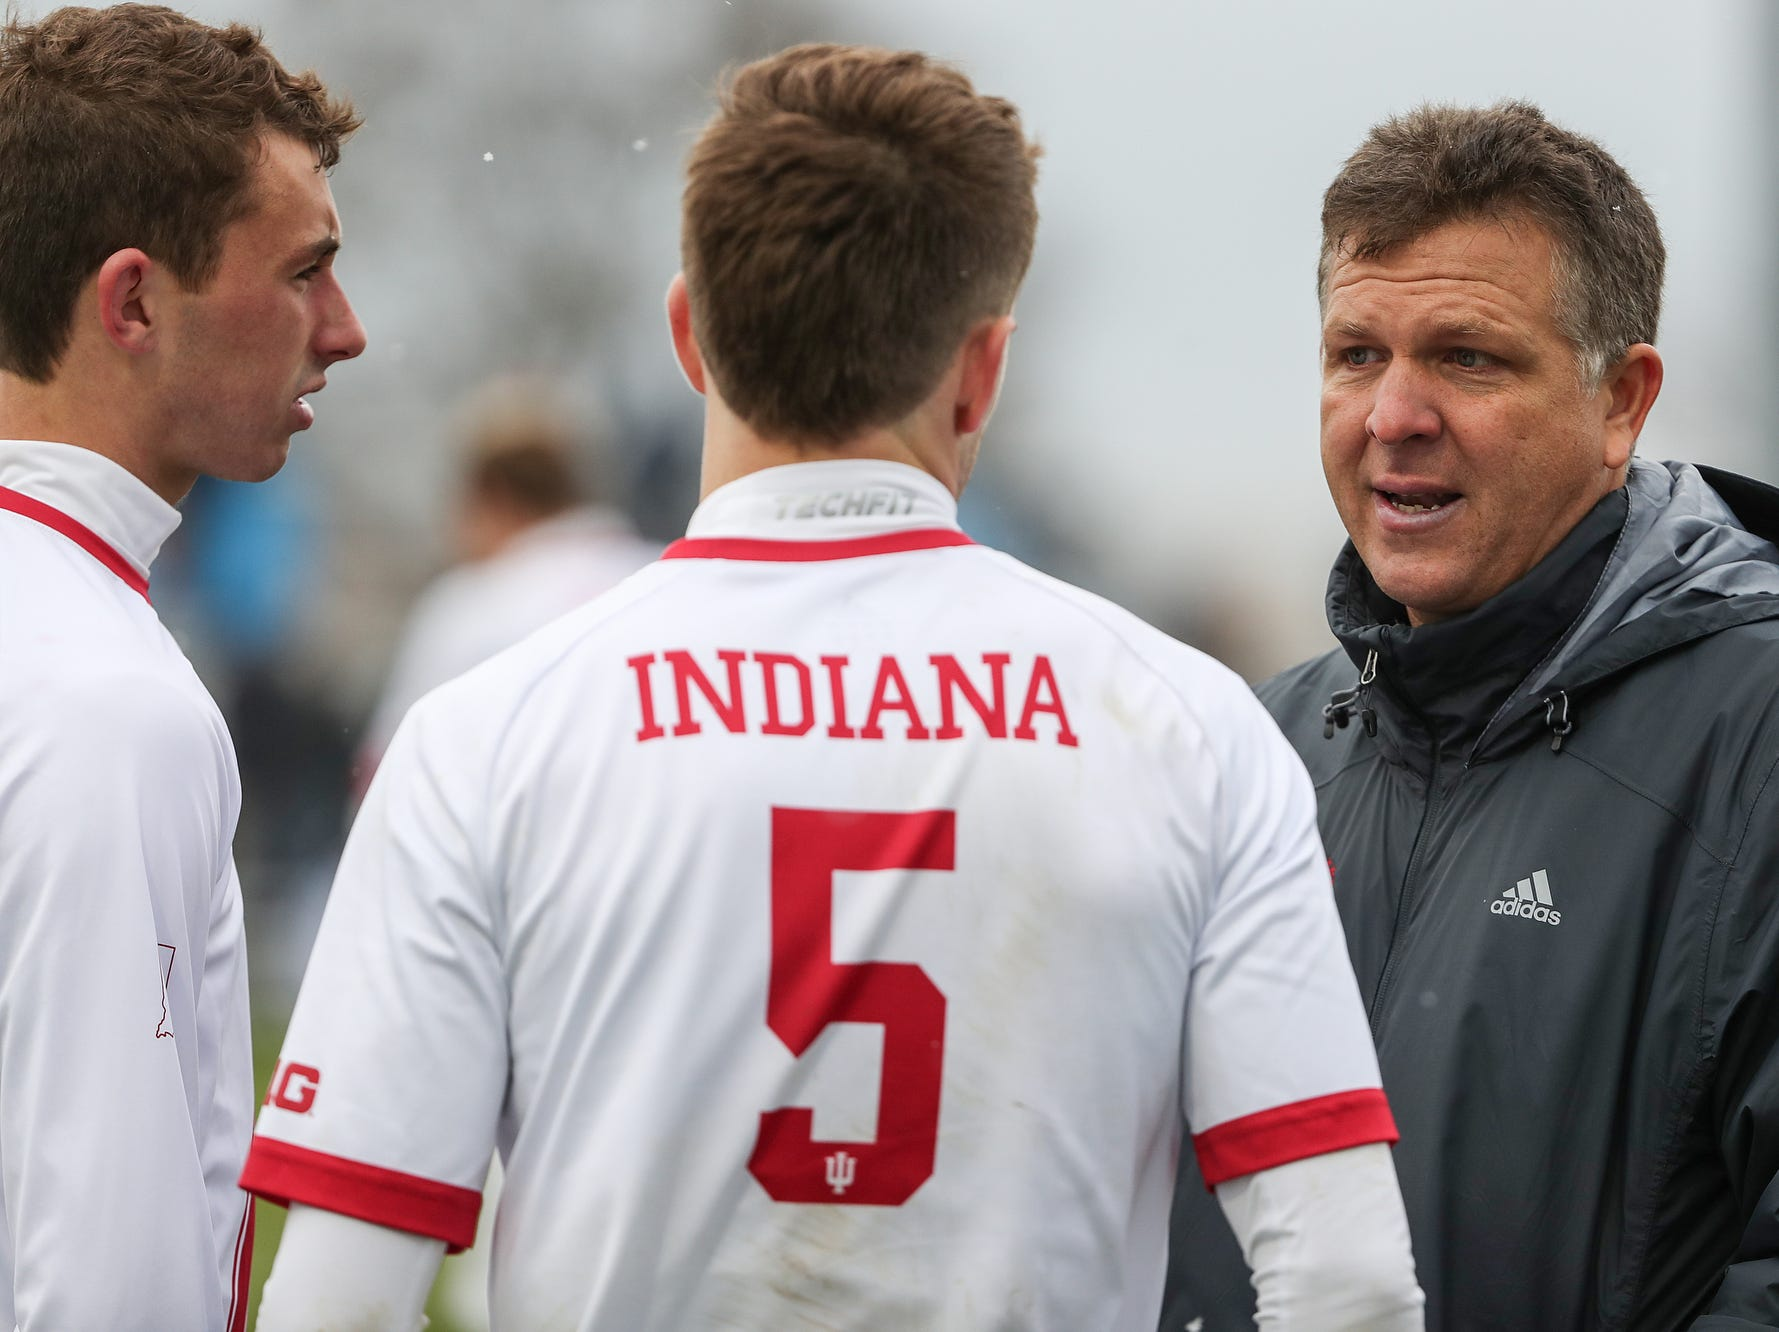 At right, Indiana Hoosiers head coach Todd Yeagley talks to players before going into overtime periods in Big Ten semifinals at Grand Park in Westfield, Ind., Friday, Nov. 9, 2018. Indiana and Maryland tied 1-1, with the Hoosiers advancing in penalty kicks, 4-3.